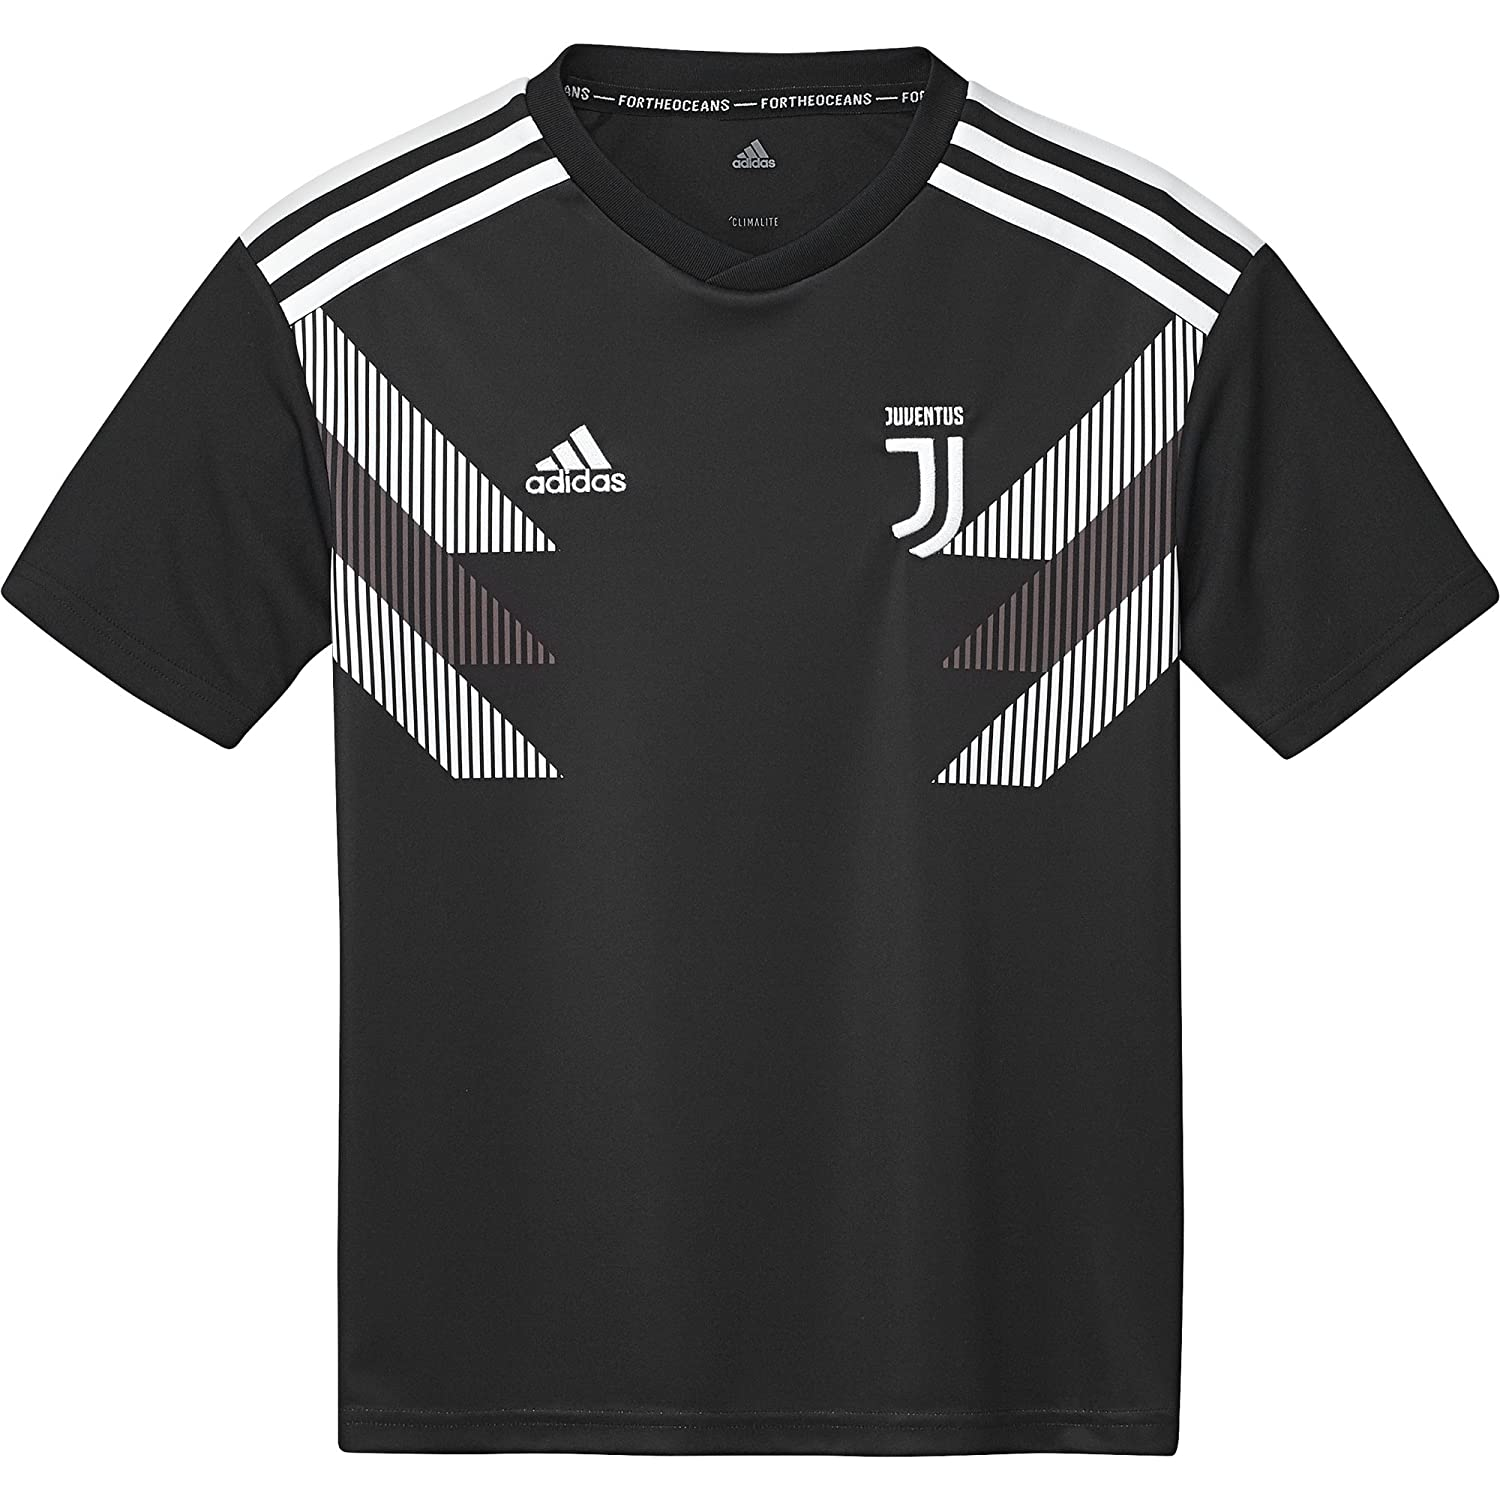 27f5e9f5d adidas Juventus Home Junior Pre-Match Jersey 2018 2019  Amazon.co.uk   Sports   Outdoors